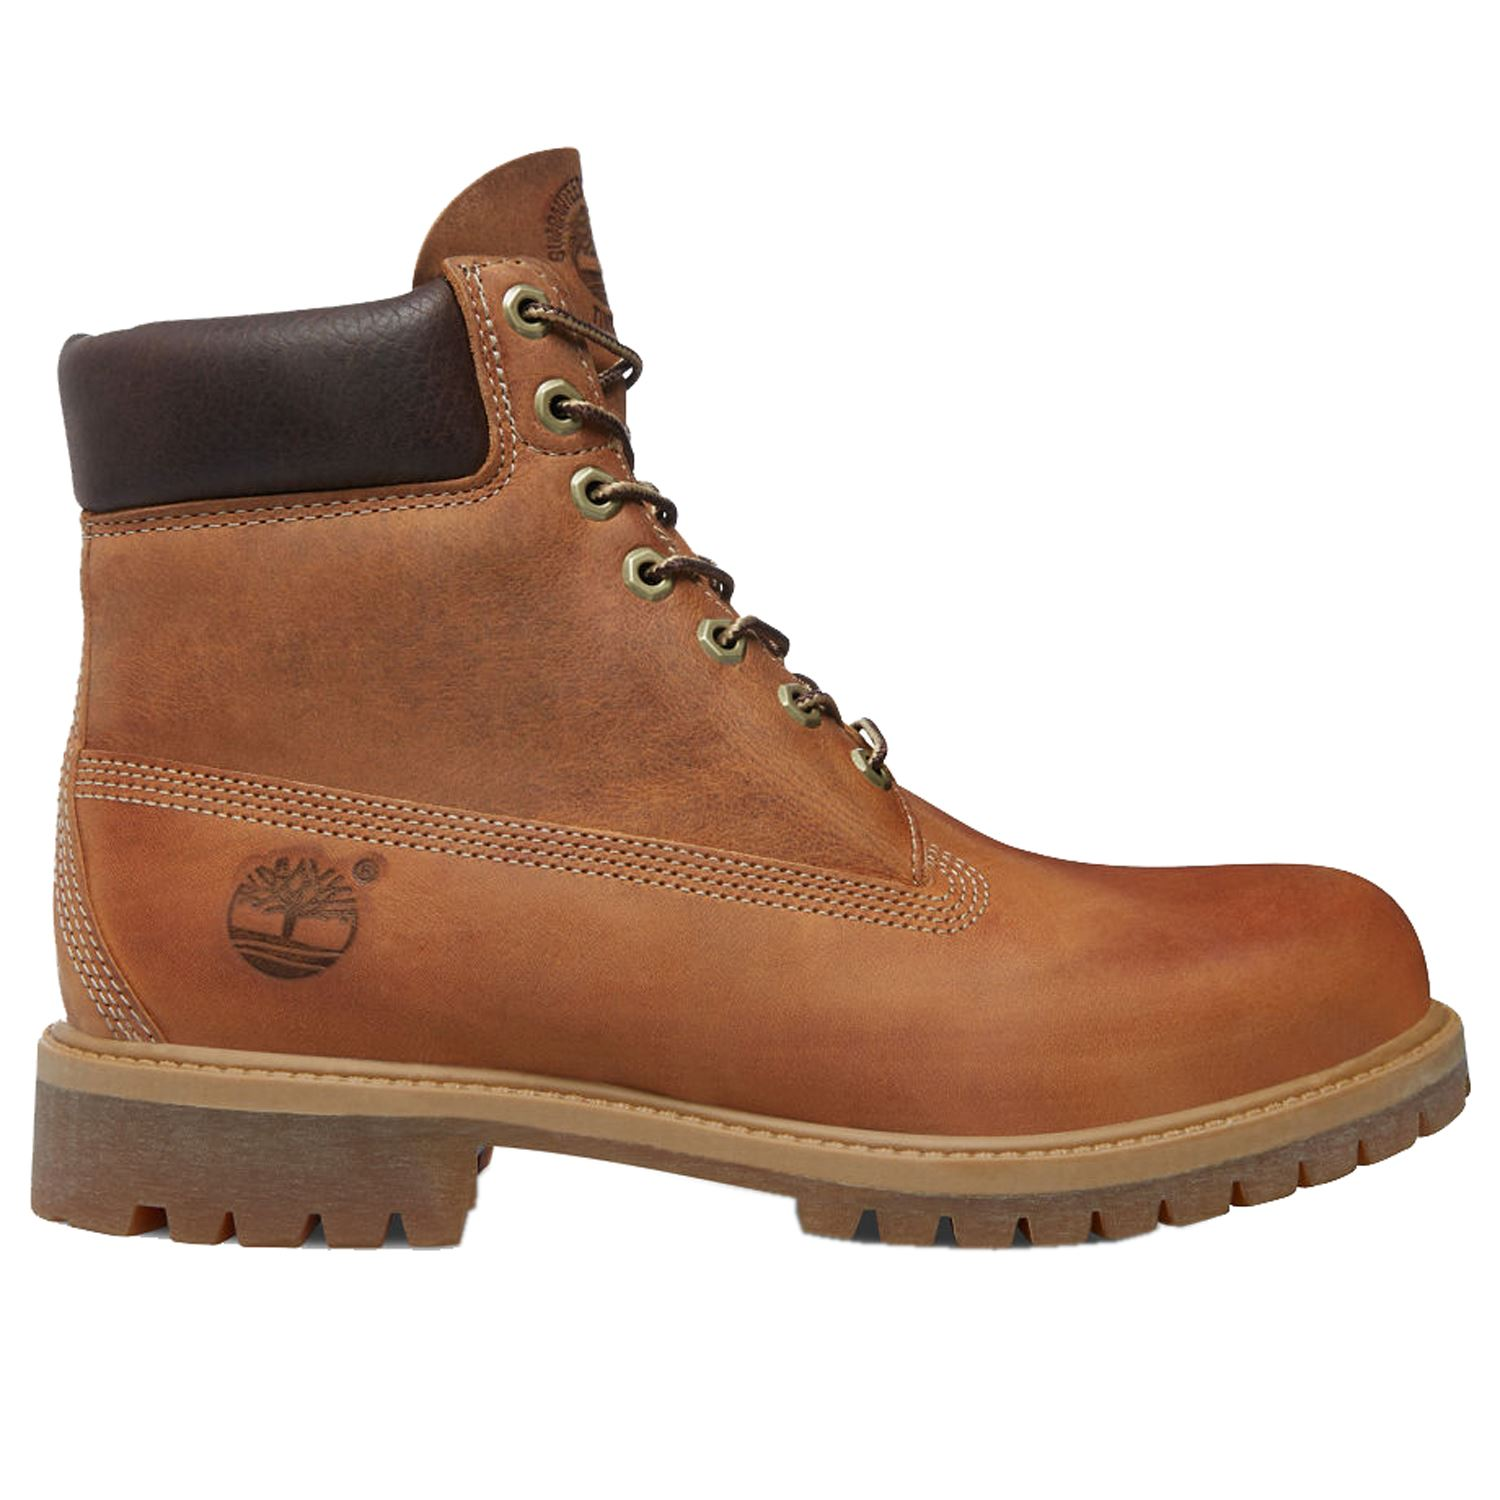 timberland heritage classic 6 inch premium wheat mens boots ebay. Black Bedroom Furniture Sets. Home Design Ideas